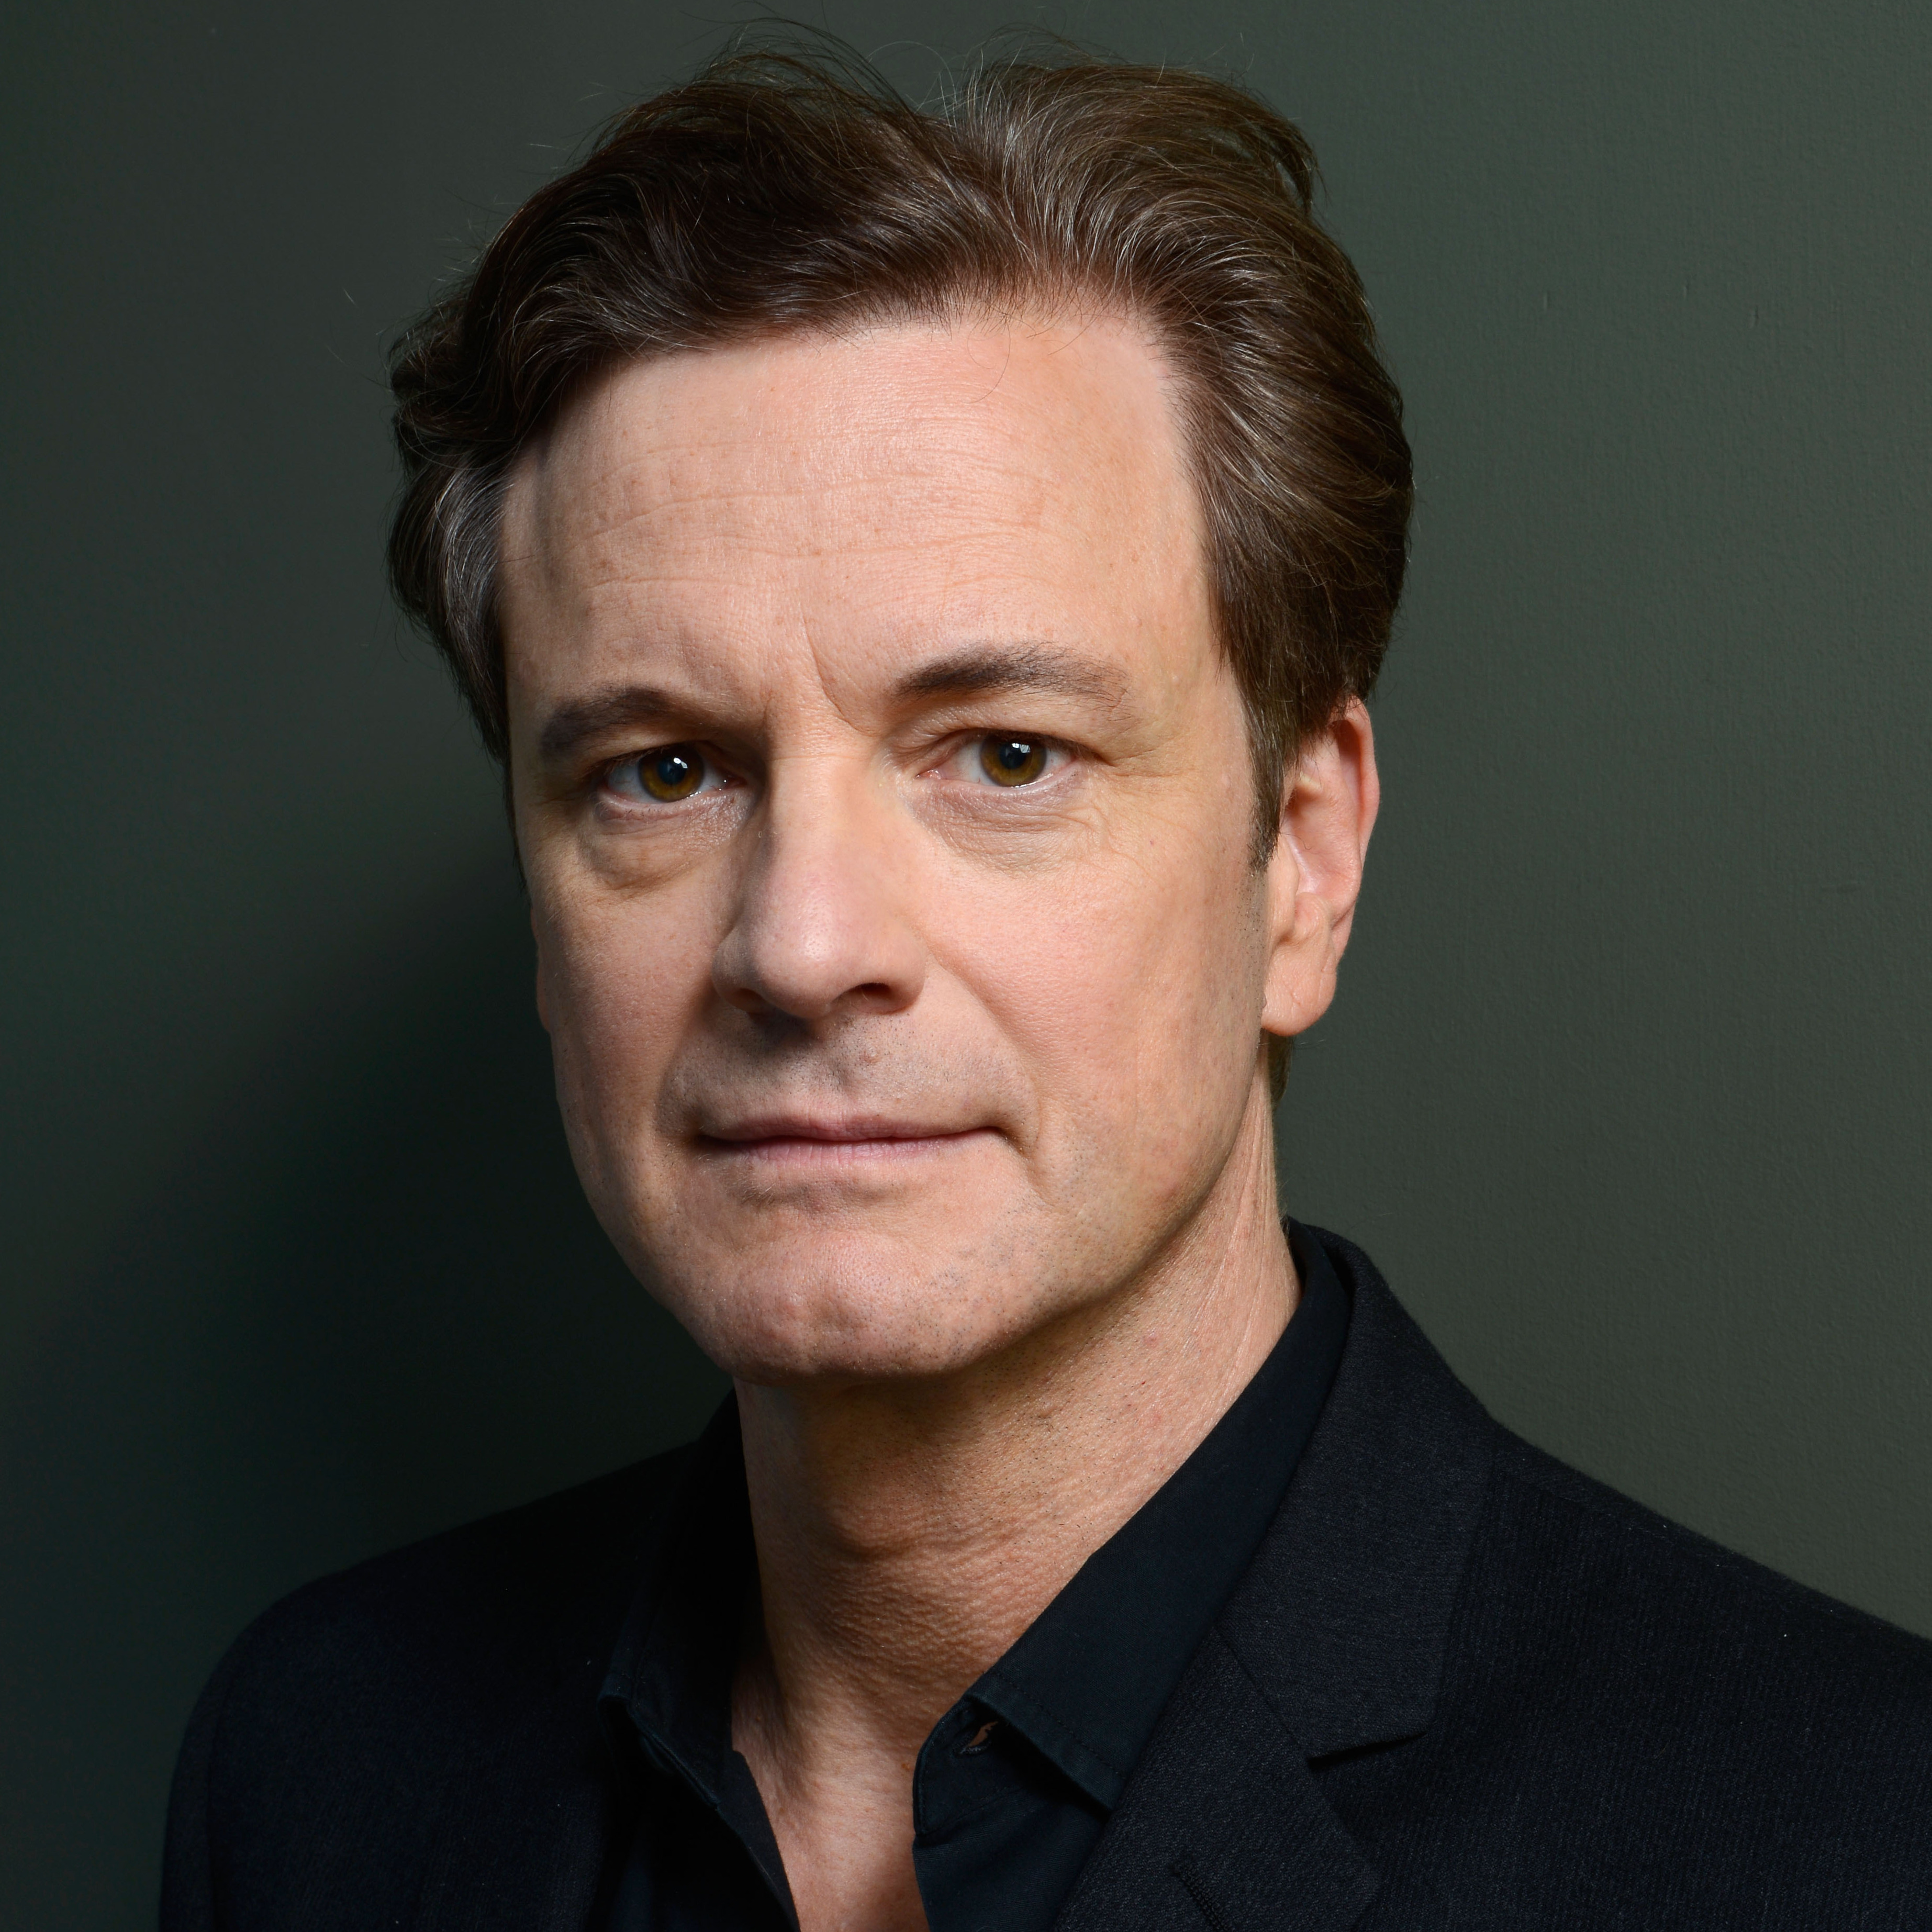 Colin Firth, known for his roles in A Single Man and The King's Speech, stars in his first Woody Allen film. (Photo by Larry Busacca/Getty Images)